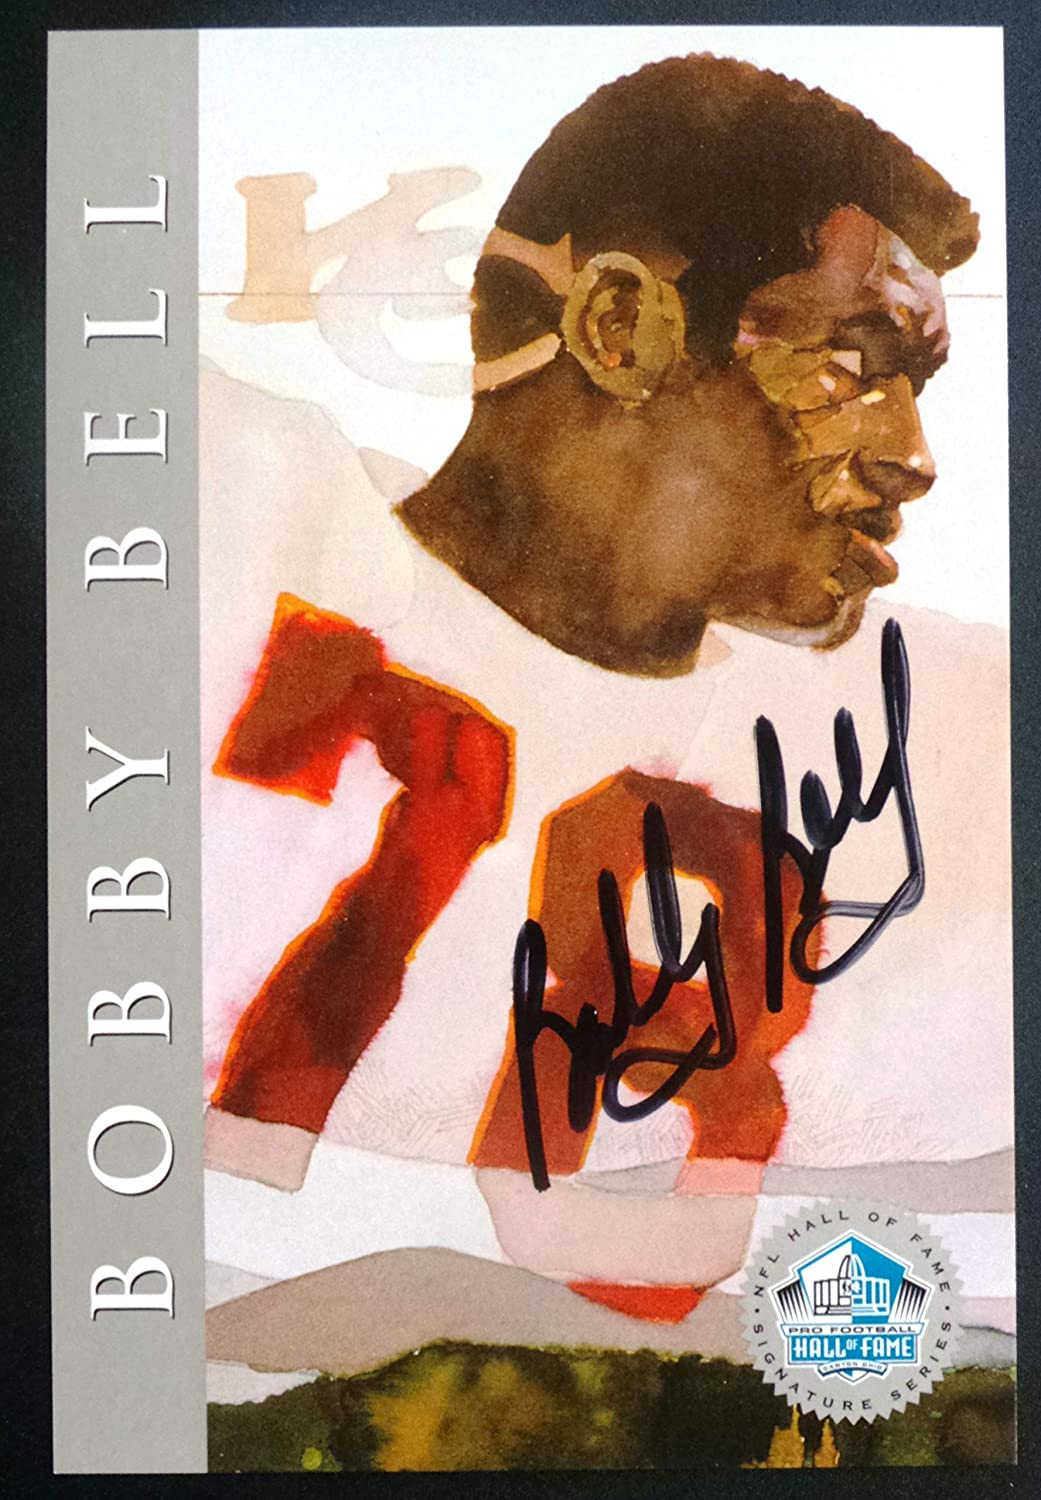 PRO FOOTBALL HALL OF FAME Bobby Bell 1998 Platinum Signature Series NFL HOF Signed Autograph Limited Edition Card